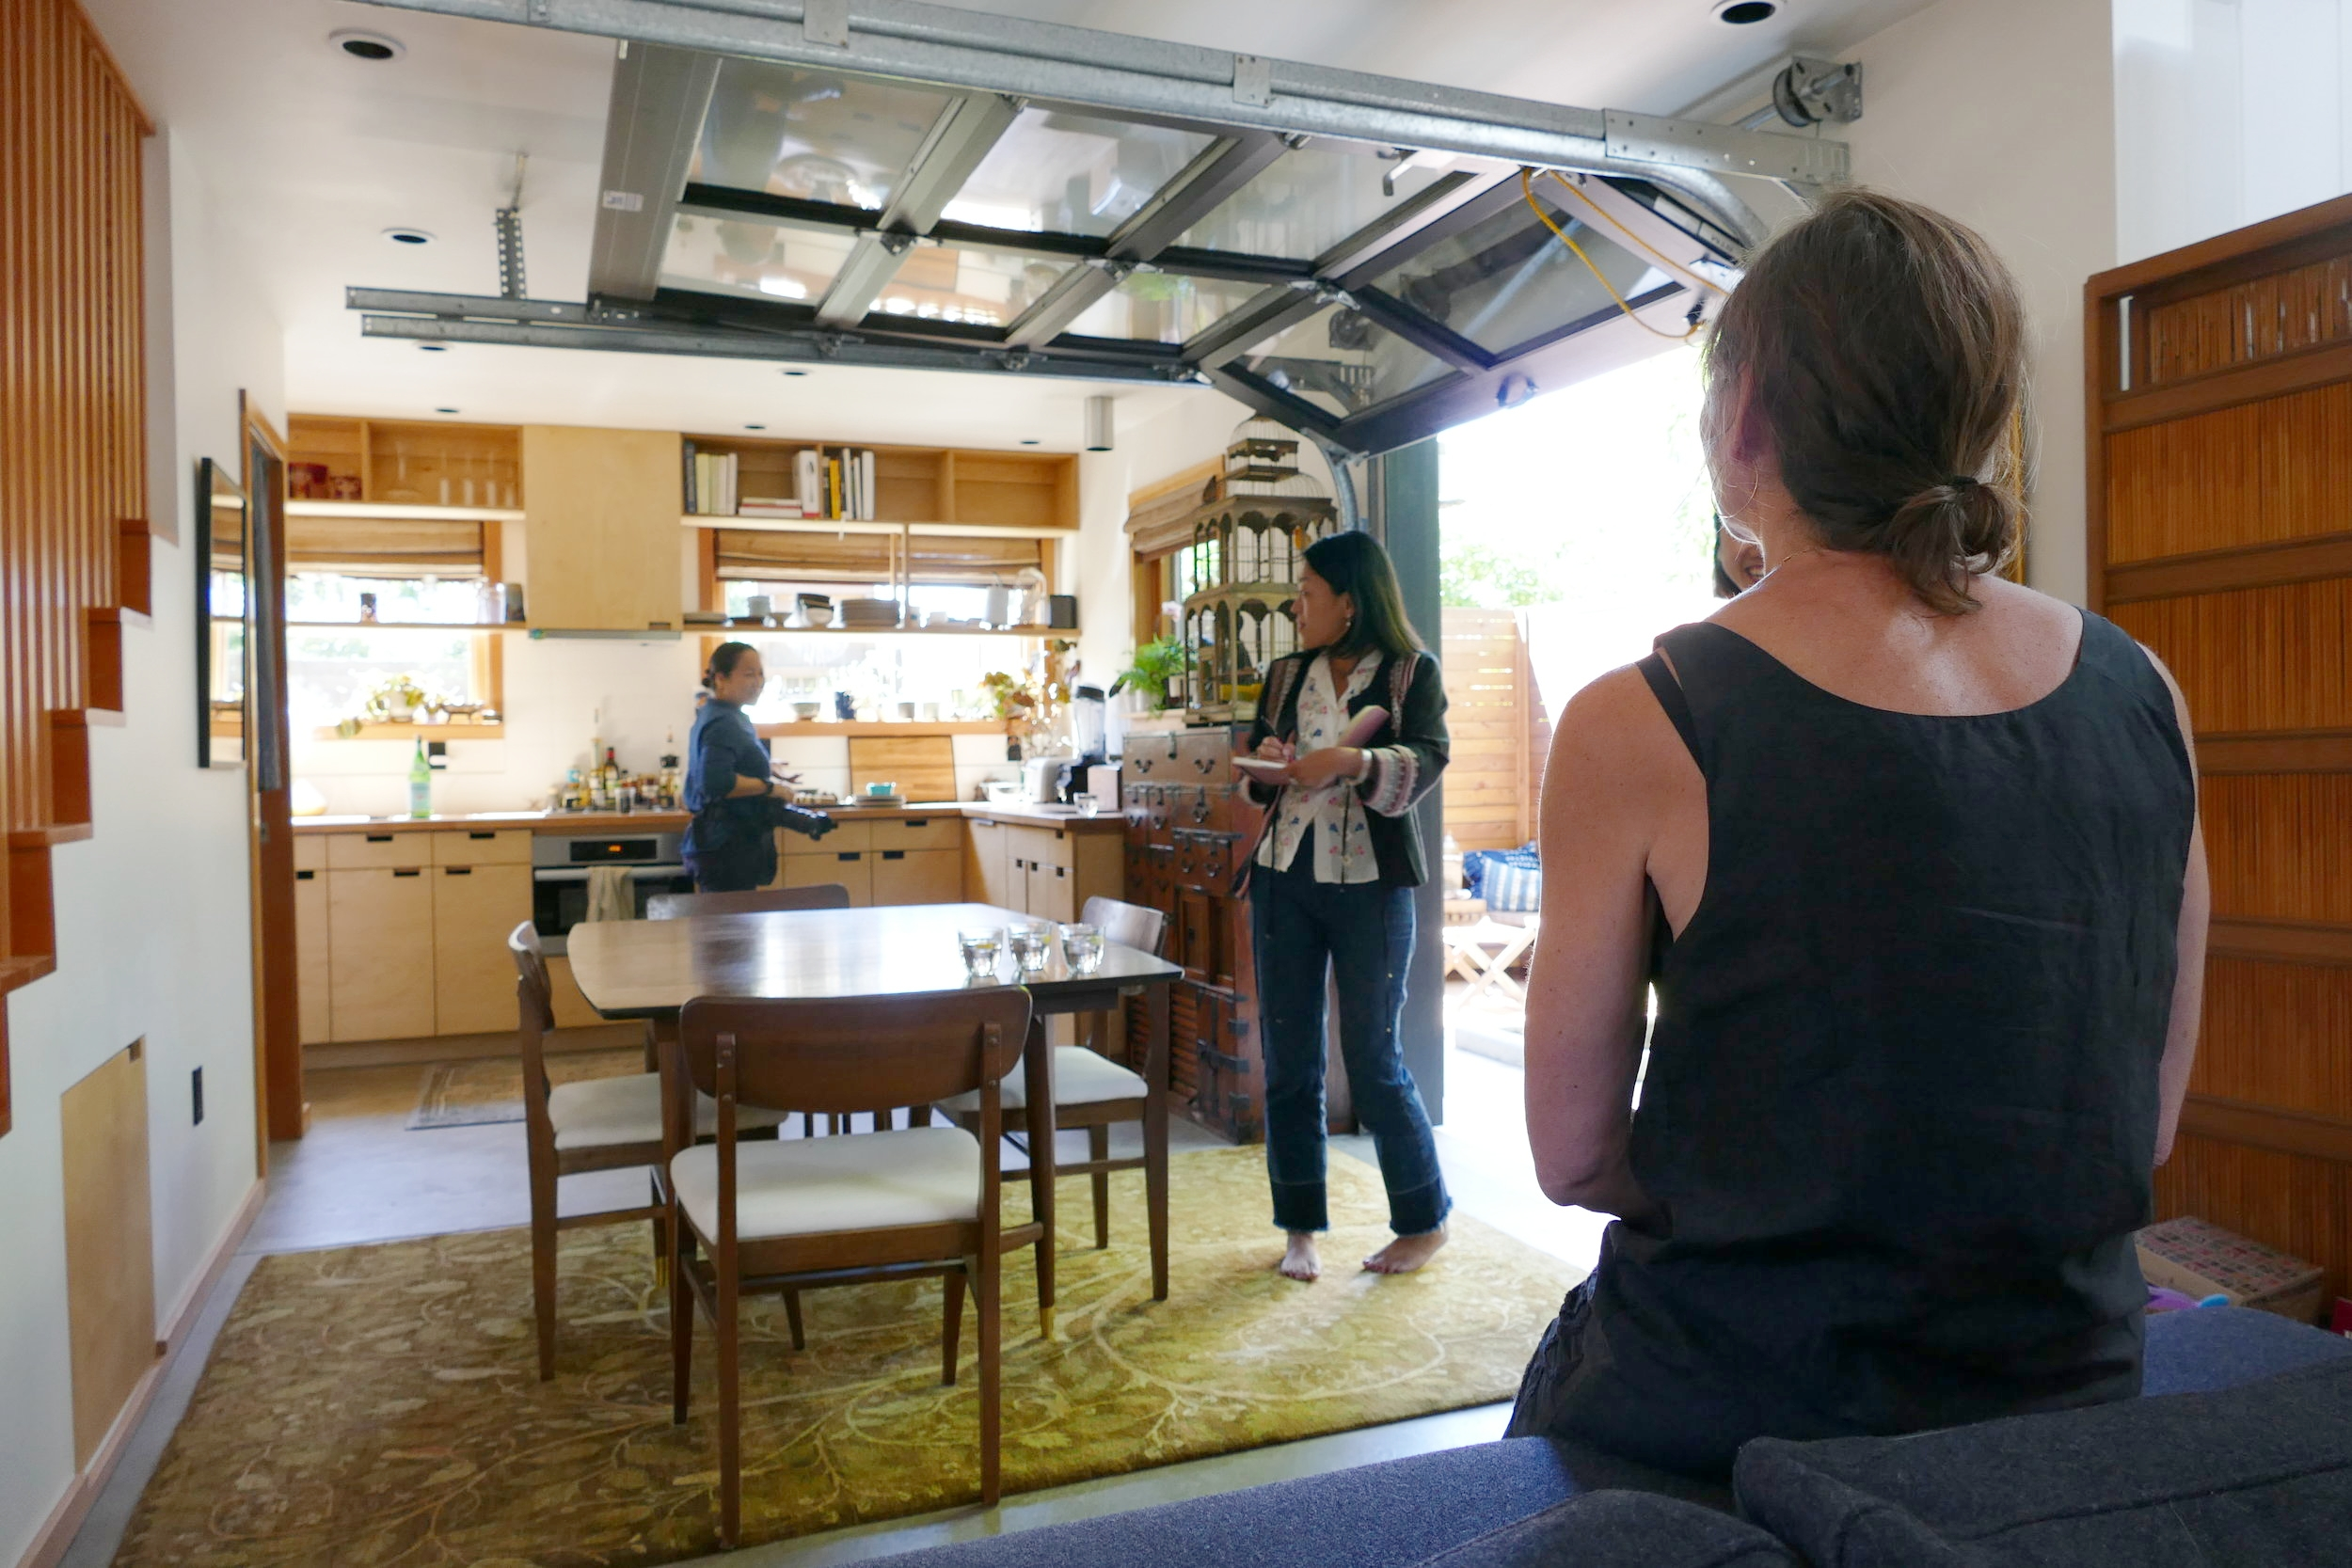 The photographer makes note of kitchen and food items she can use as props for the session while the editor, Megumi,checks her shot list with areas around the property. Shannon patiently waiting to be directed in outfit #1.